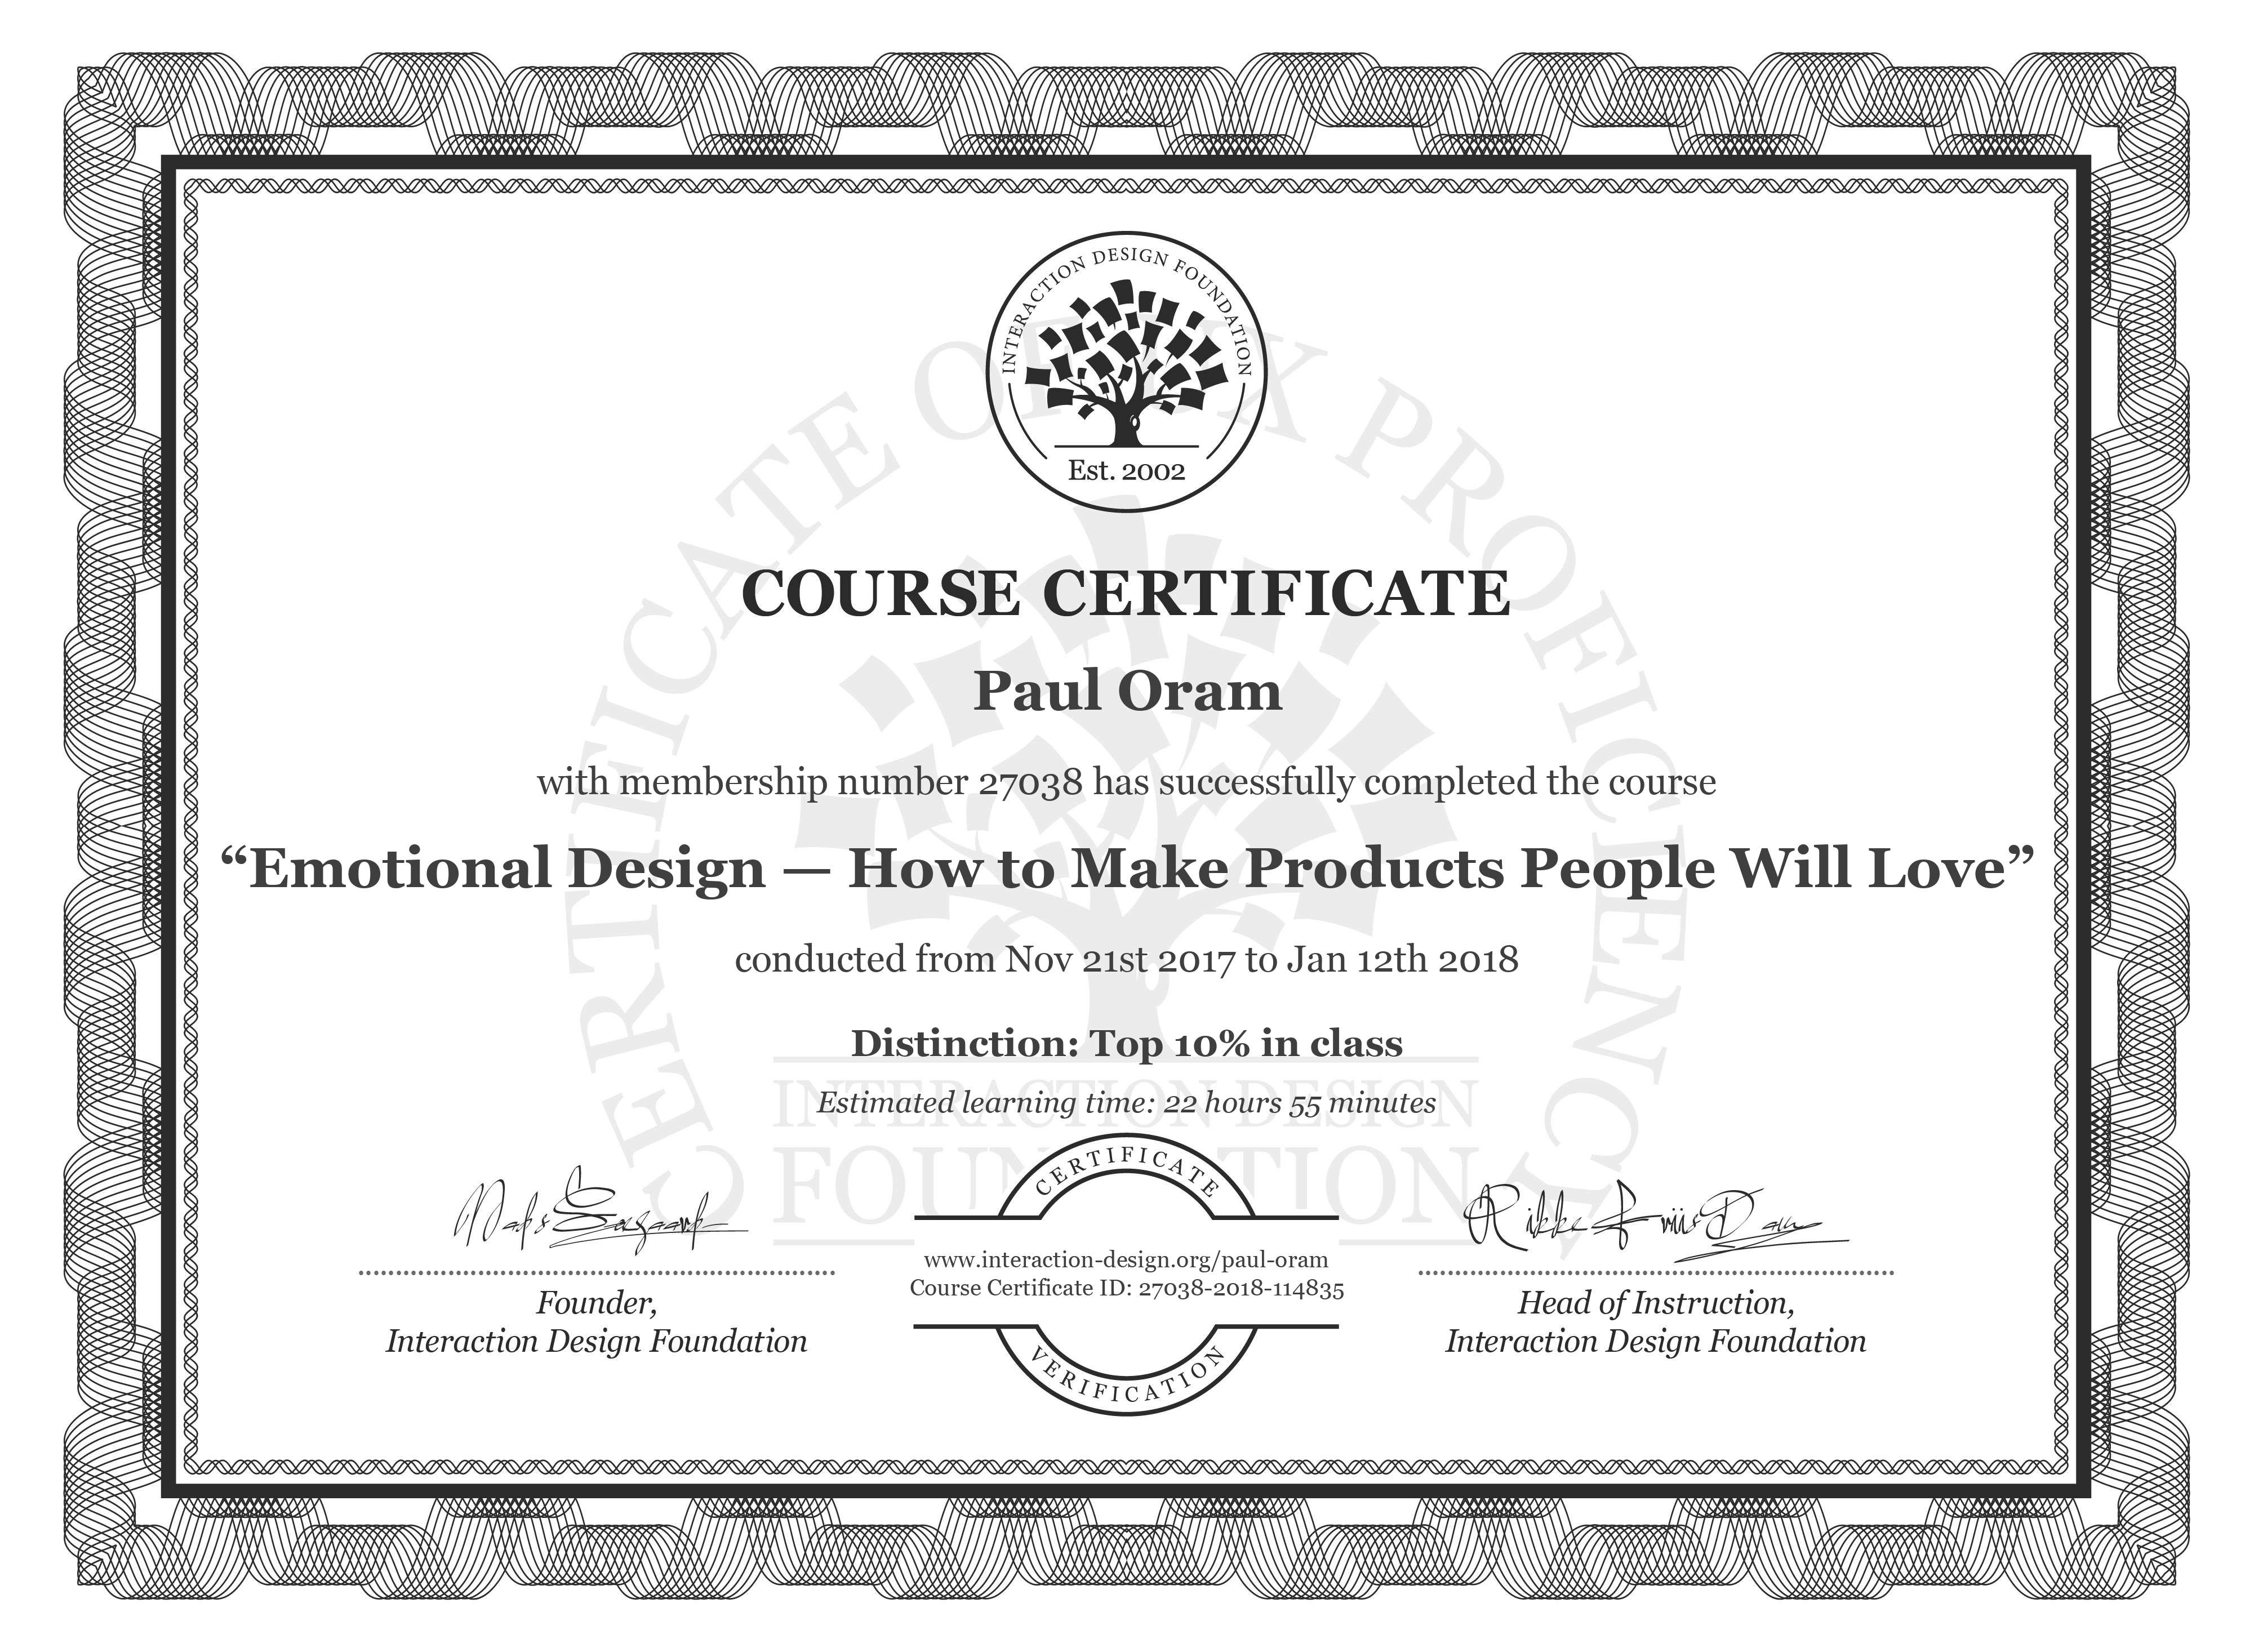 Paul Oram: Course Certificate - Emotional Design — How to Make Products People Will Love